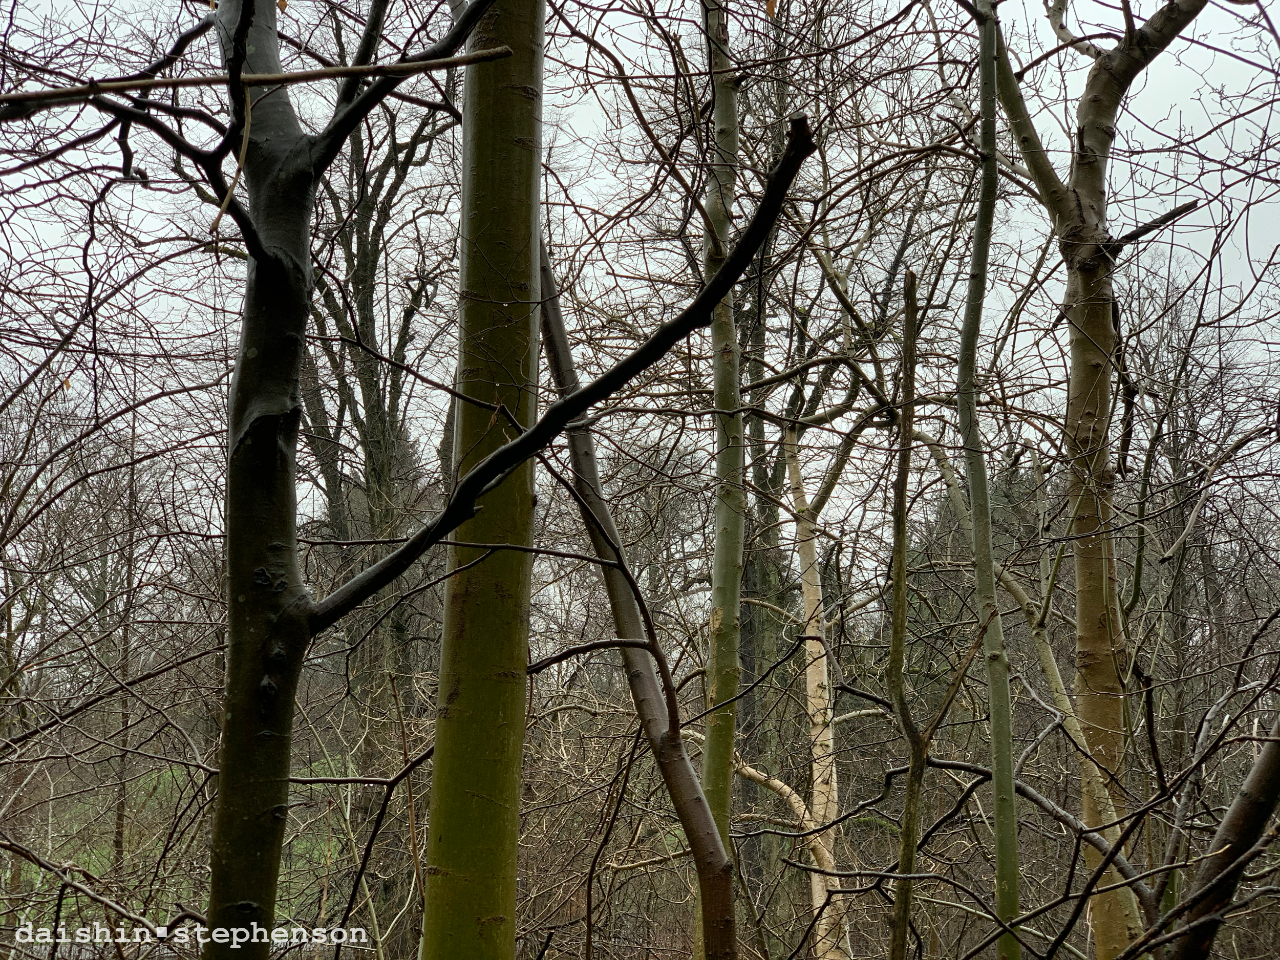 looking through bare-limbed trees on a wet winter day